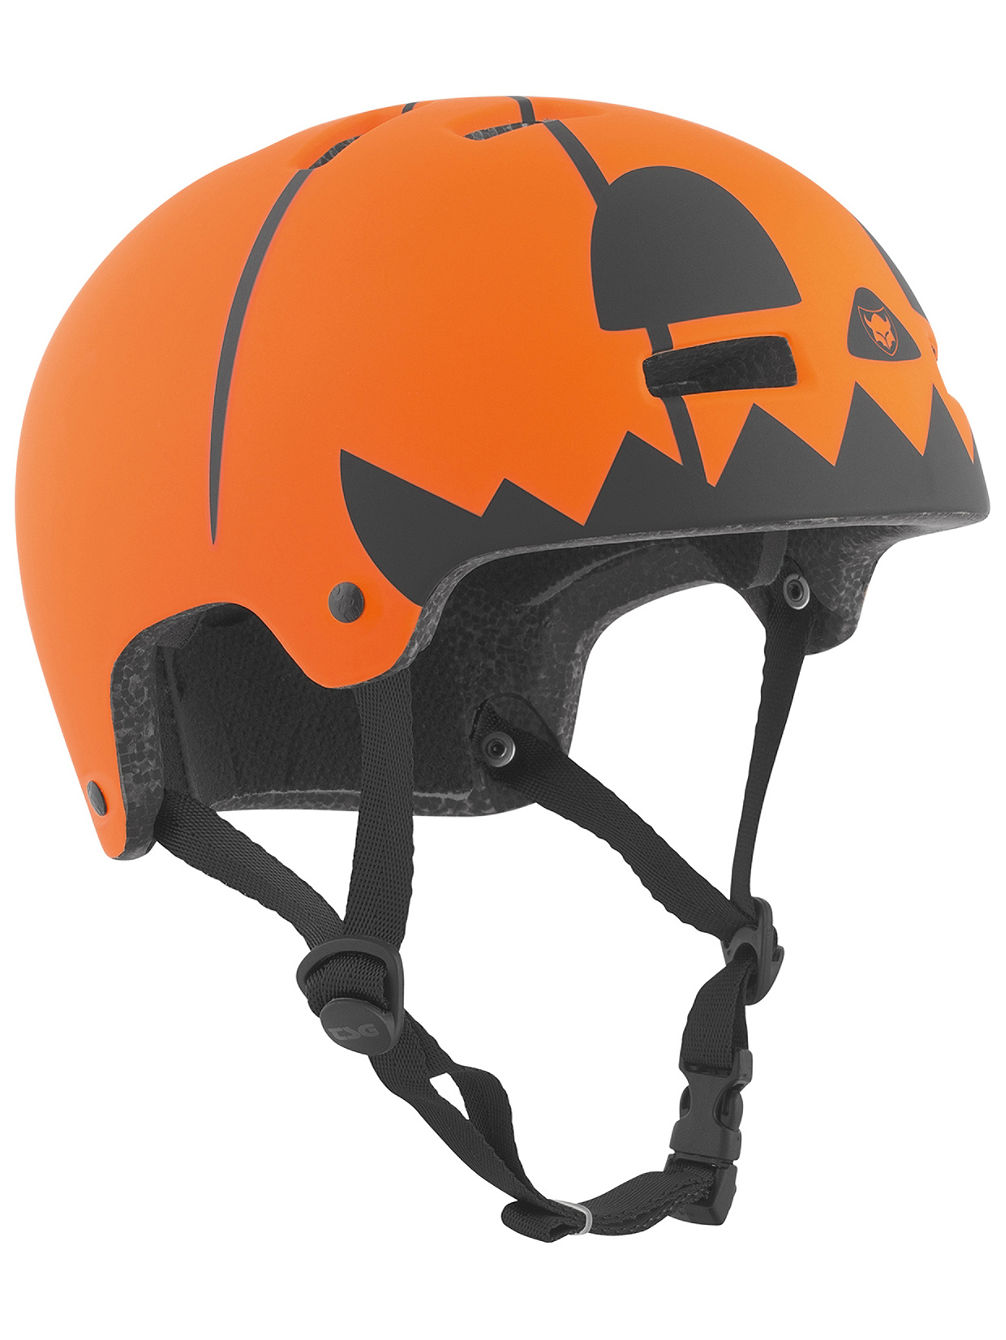 Nipper Maxi Graphic Design Helmet